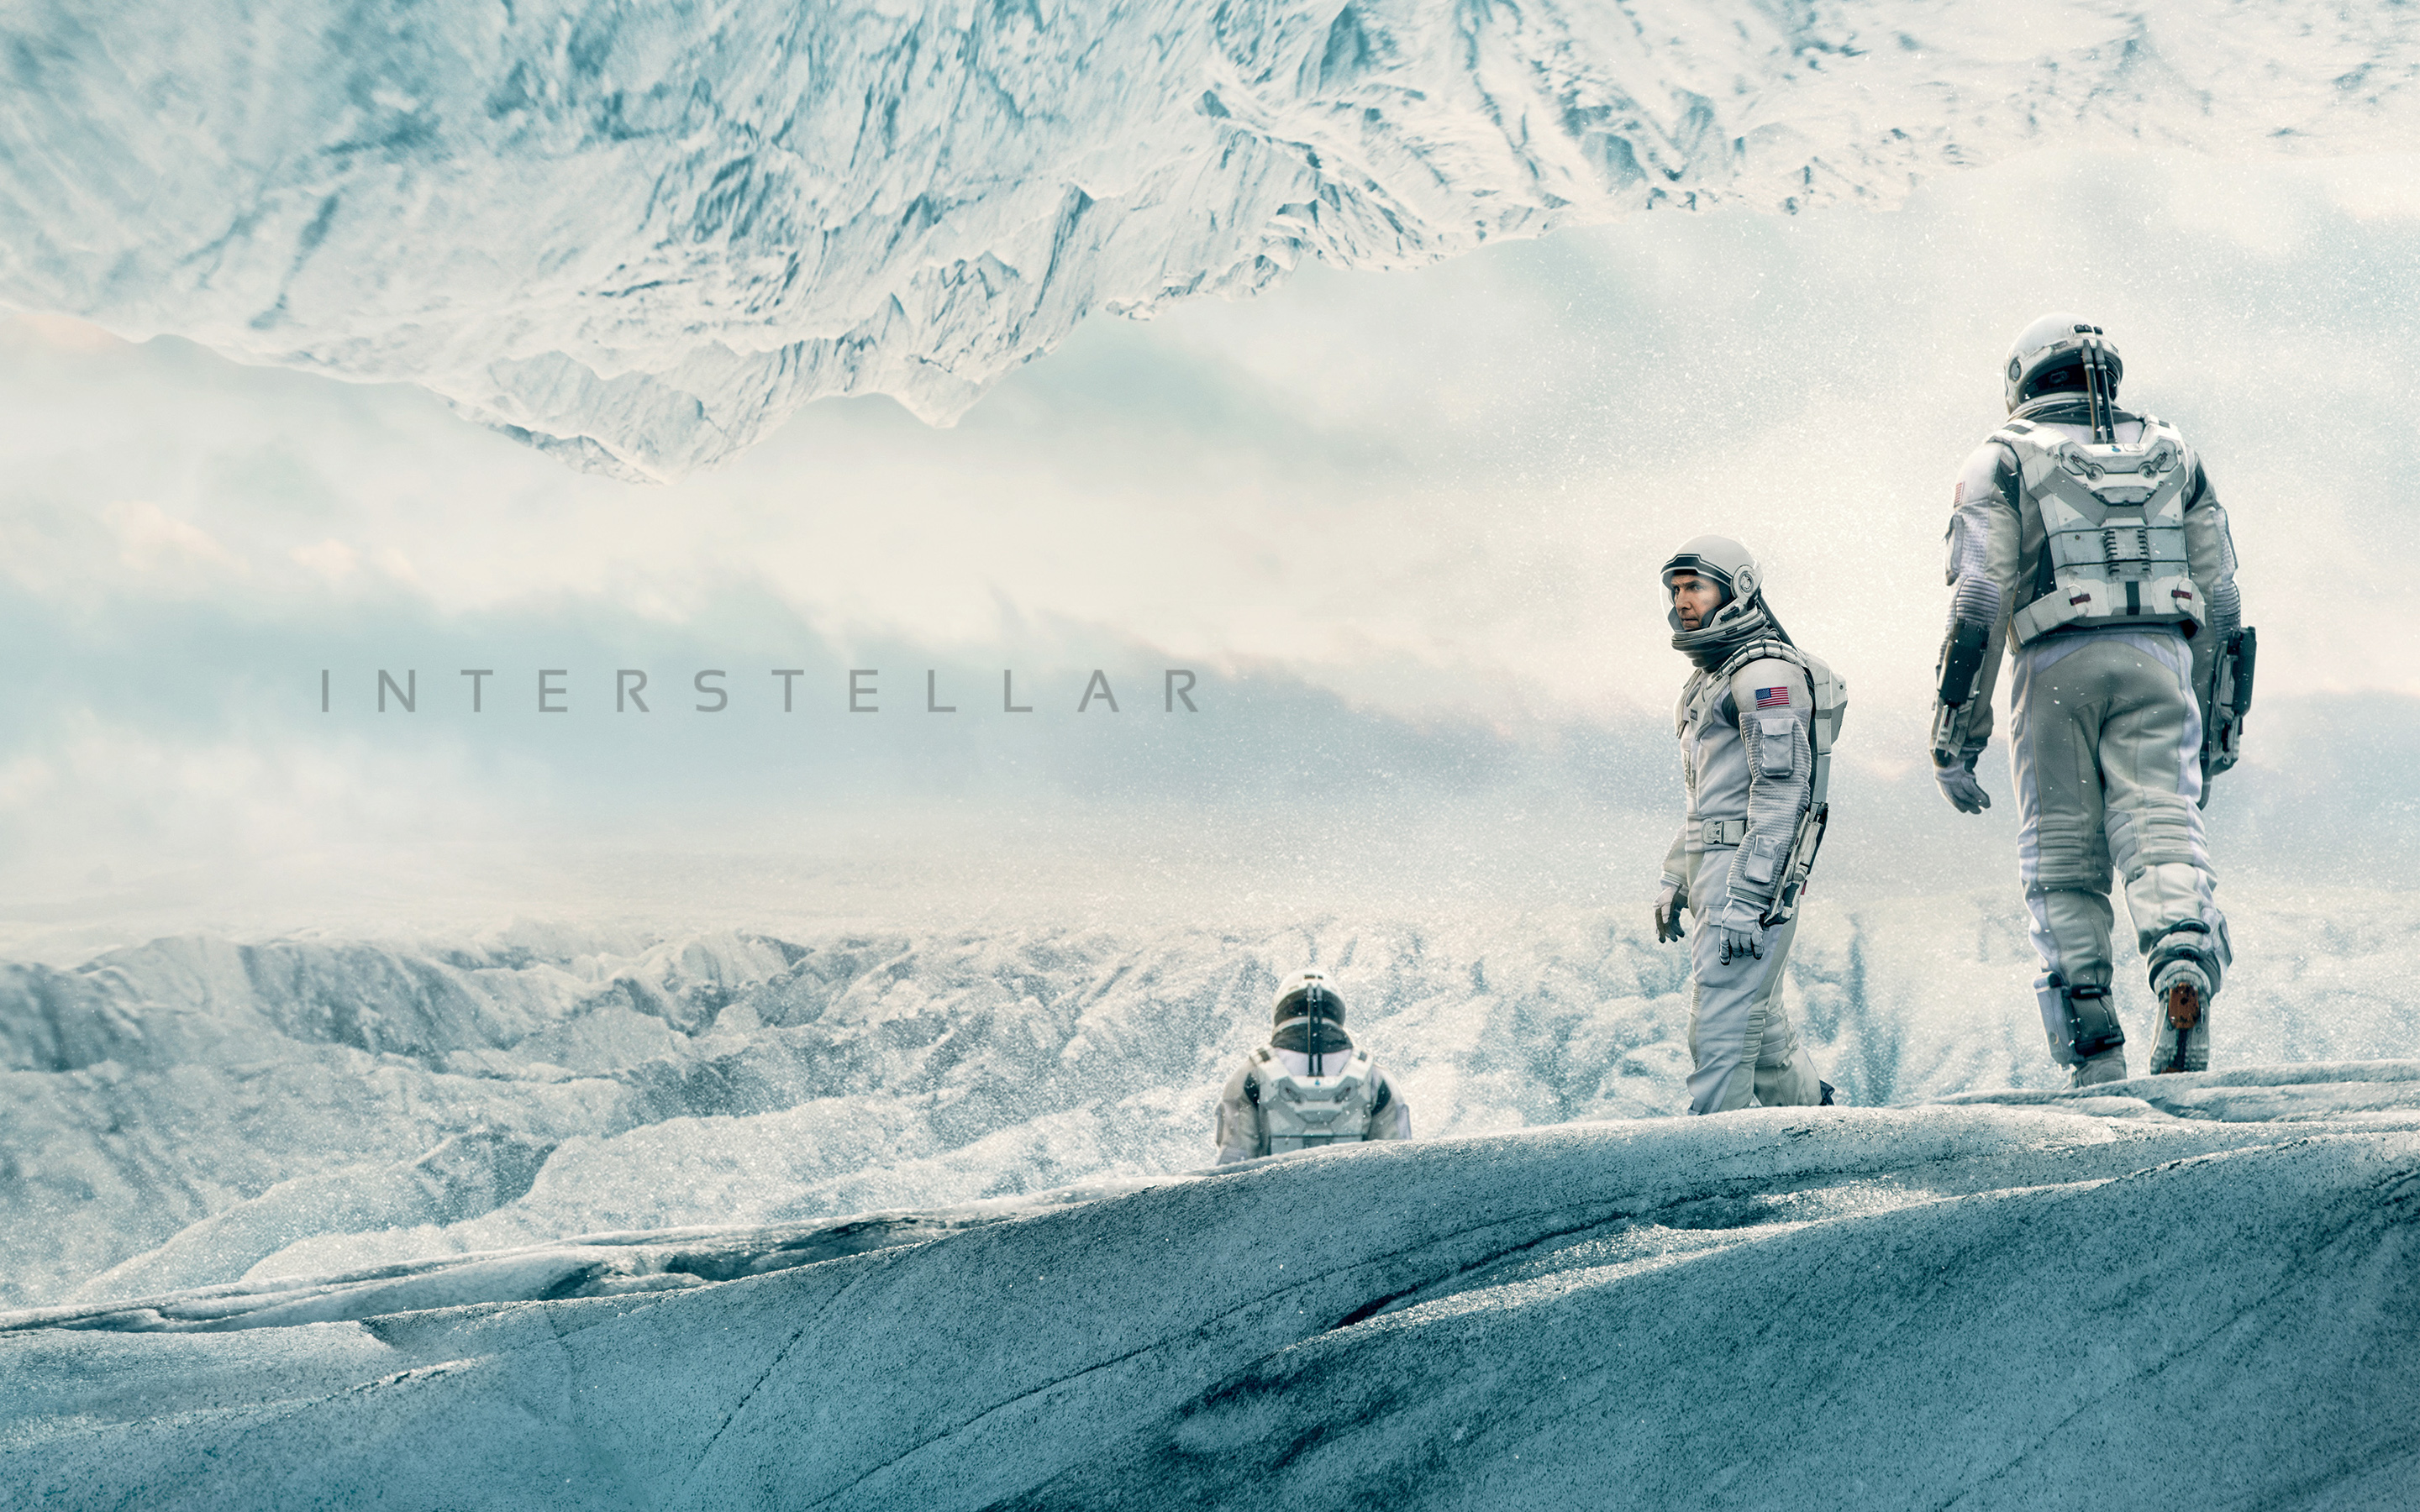 2560x1600 Interstellar 2014 2560x1600 Resolution Hd 4k